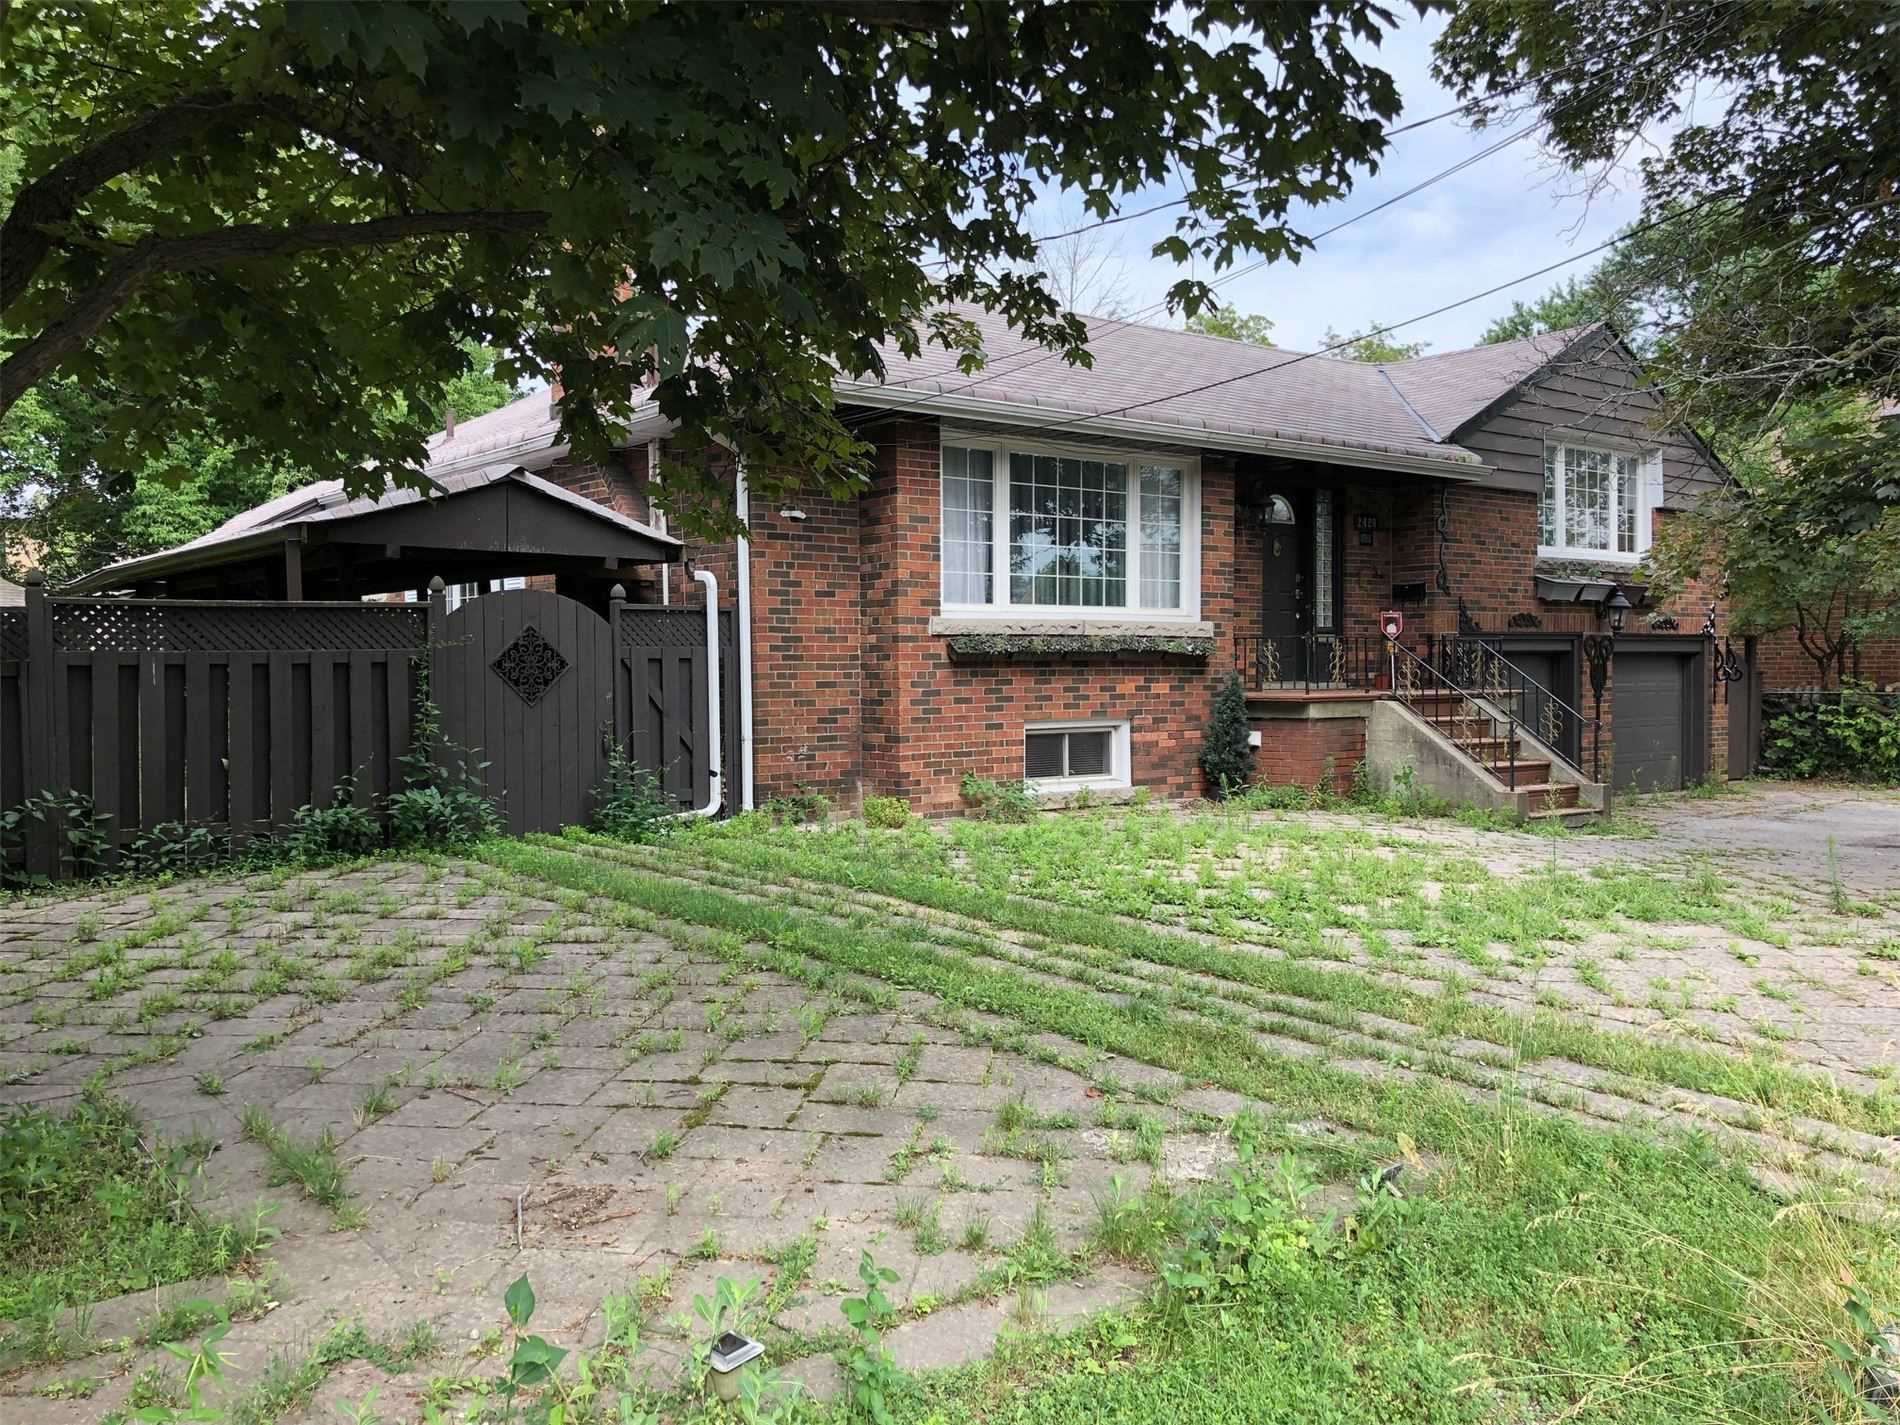 2420 Bayview Ave, Toronto, Ontario M2L1A3, 3 Bedrooms Bedrooms, 9 Rooms Rooms,3 BathroomsBathrooms,Detached,For Sale,Bayview,C4835342